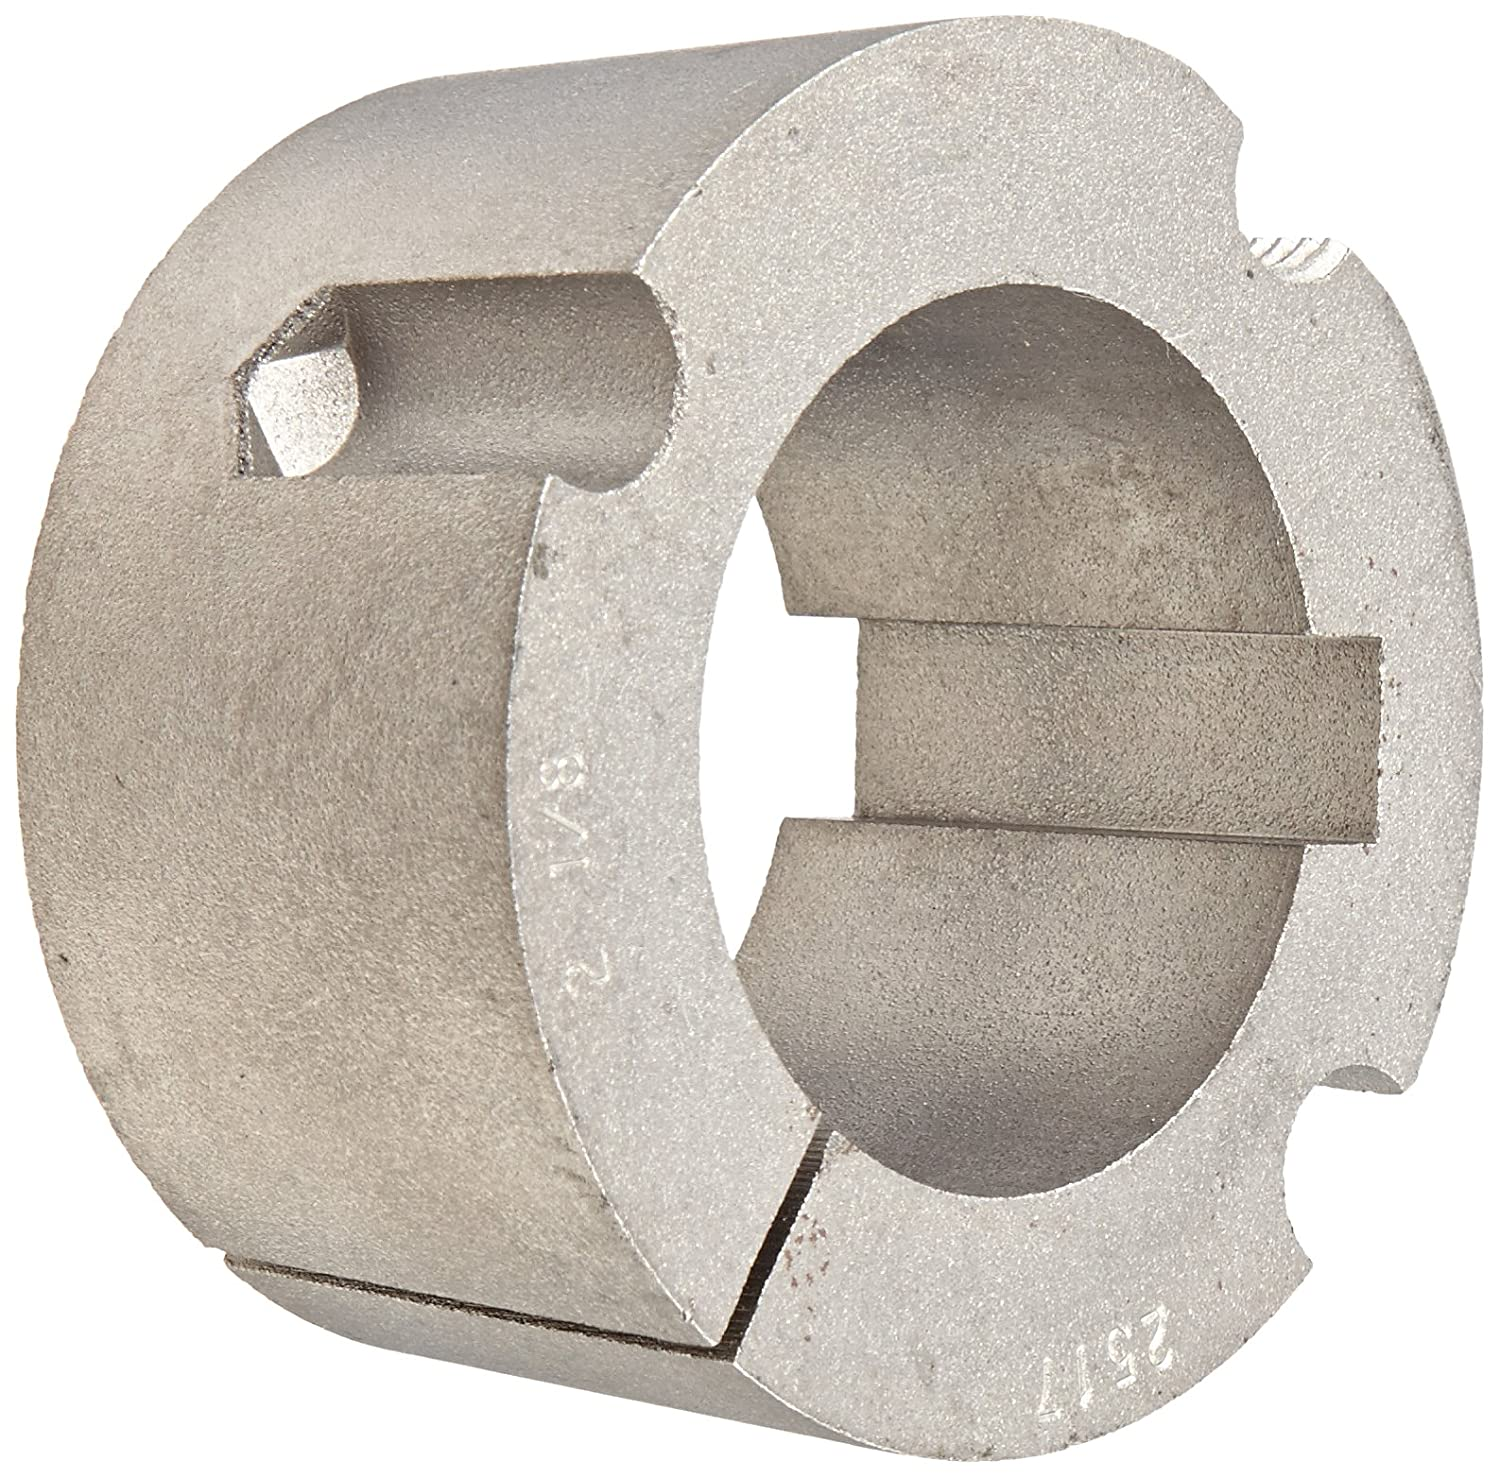 2.187 OD 1.38 Bore Inch 1.37 Length Sintered Steel Martin SDS 1 3//8 Quick Disconnect Bushing